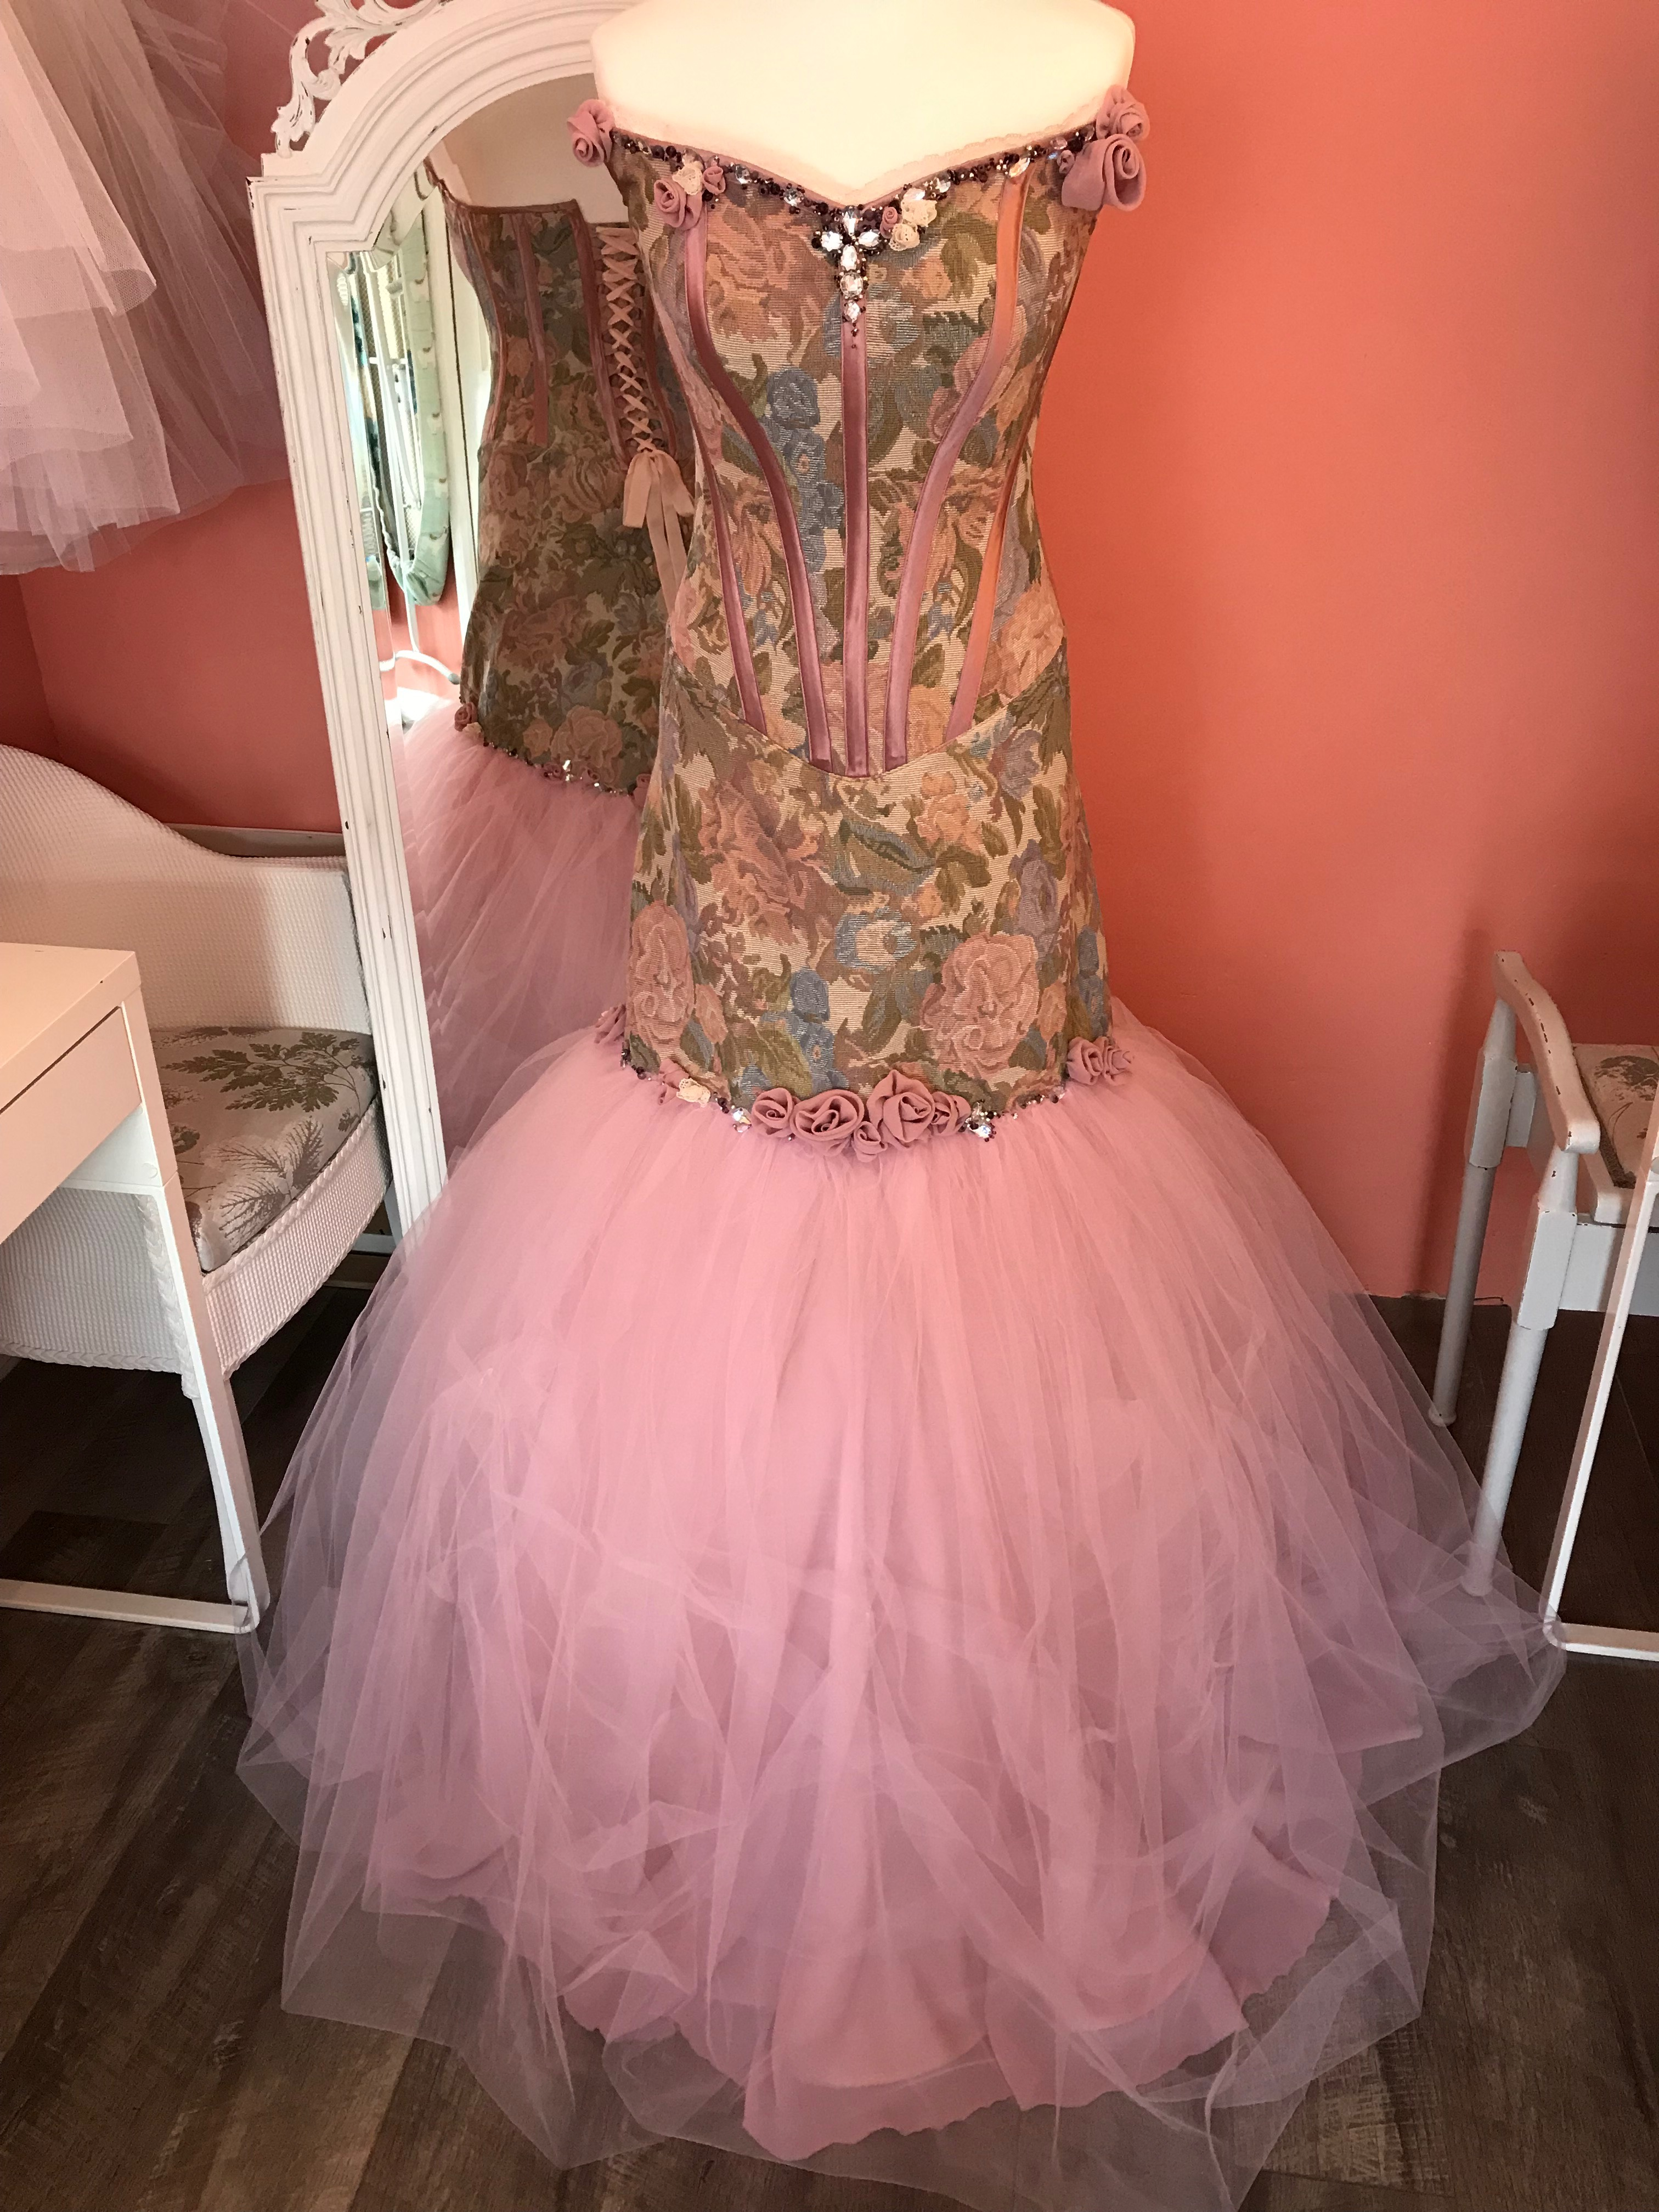 Rose wedding gown front